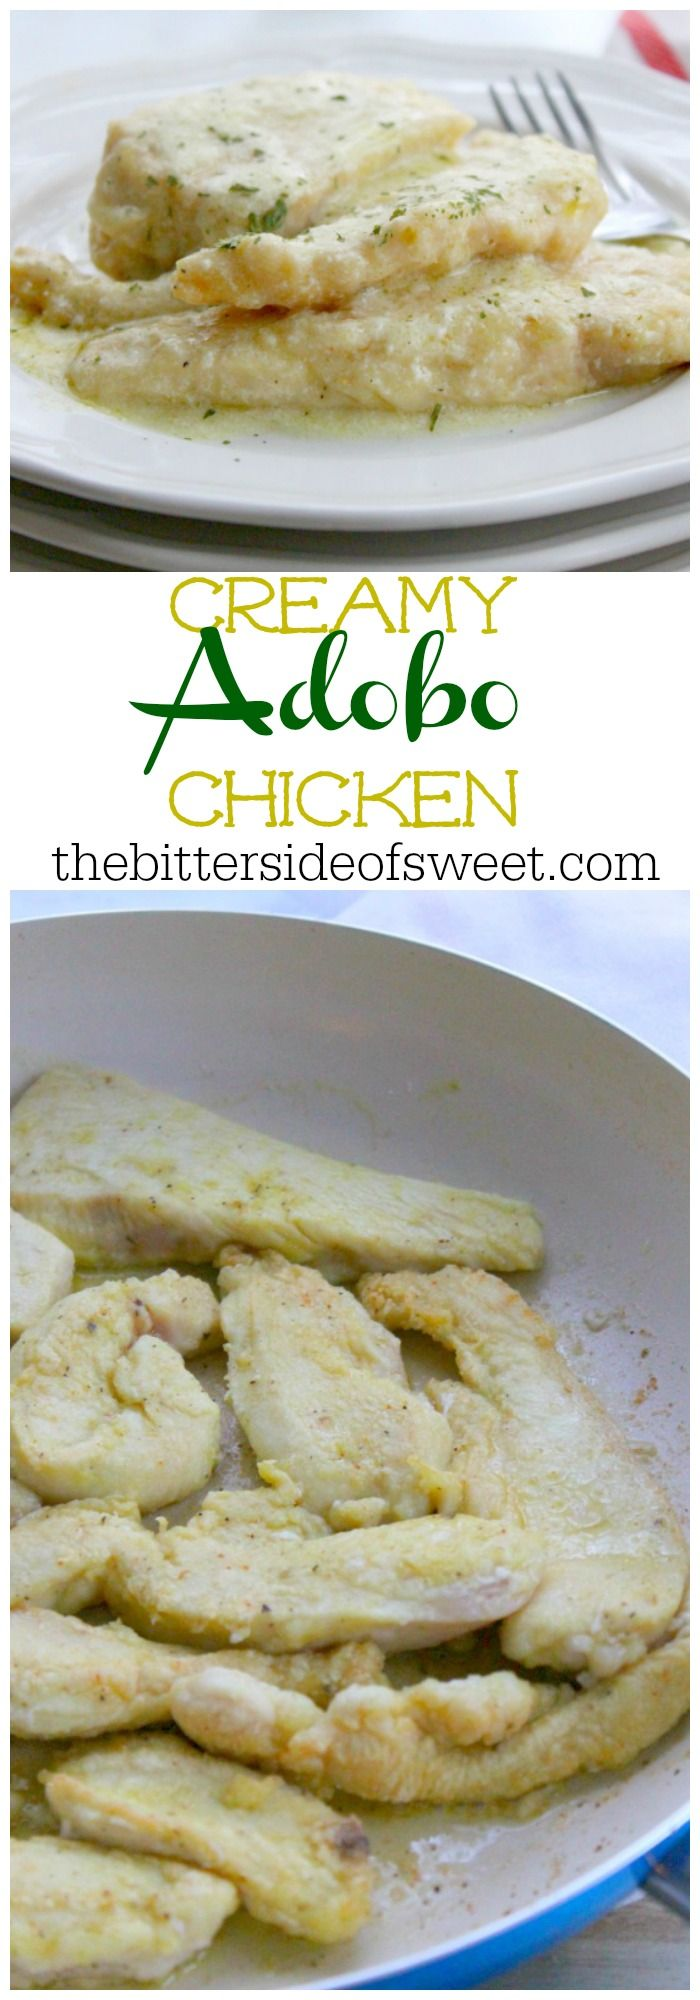 Creamy Adobo Chicken | The Bitter Side of Sweet #stonyfieldblogger #ad #OrganicMoments